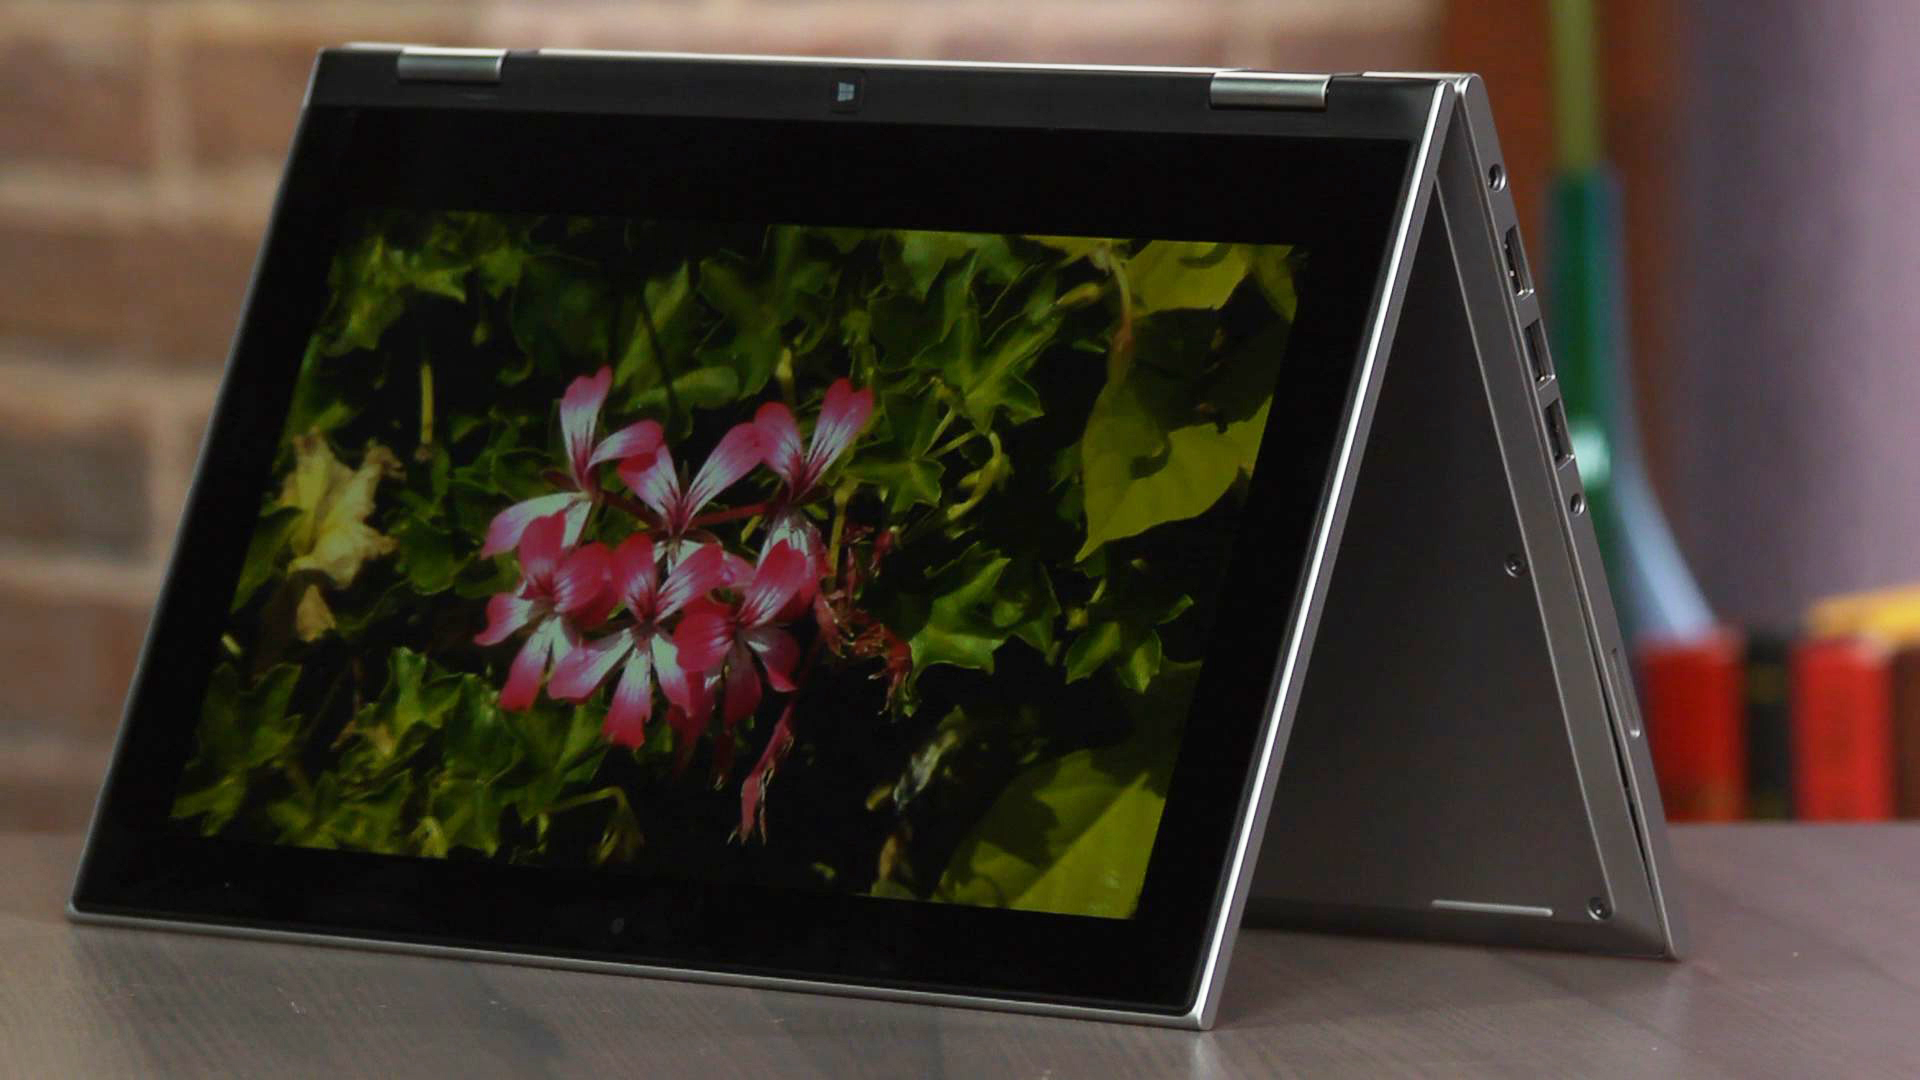 Video: Dell's Inspiron 11 3000 gives budget buyers something to flip for